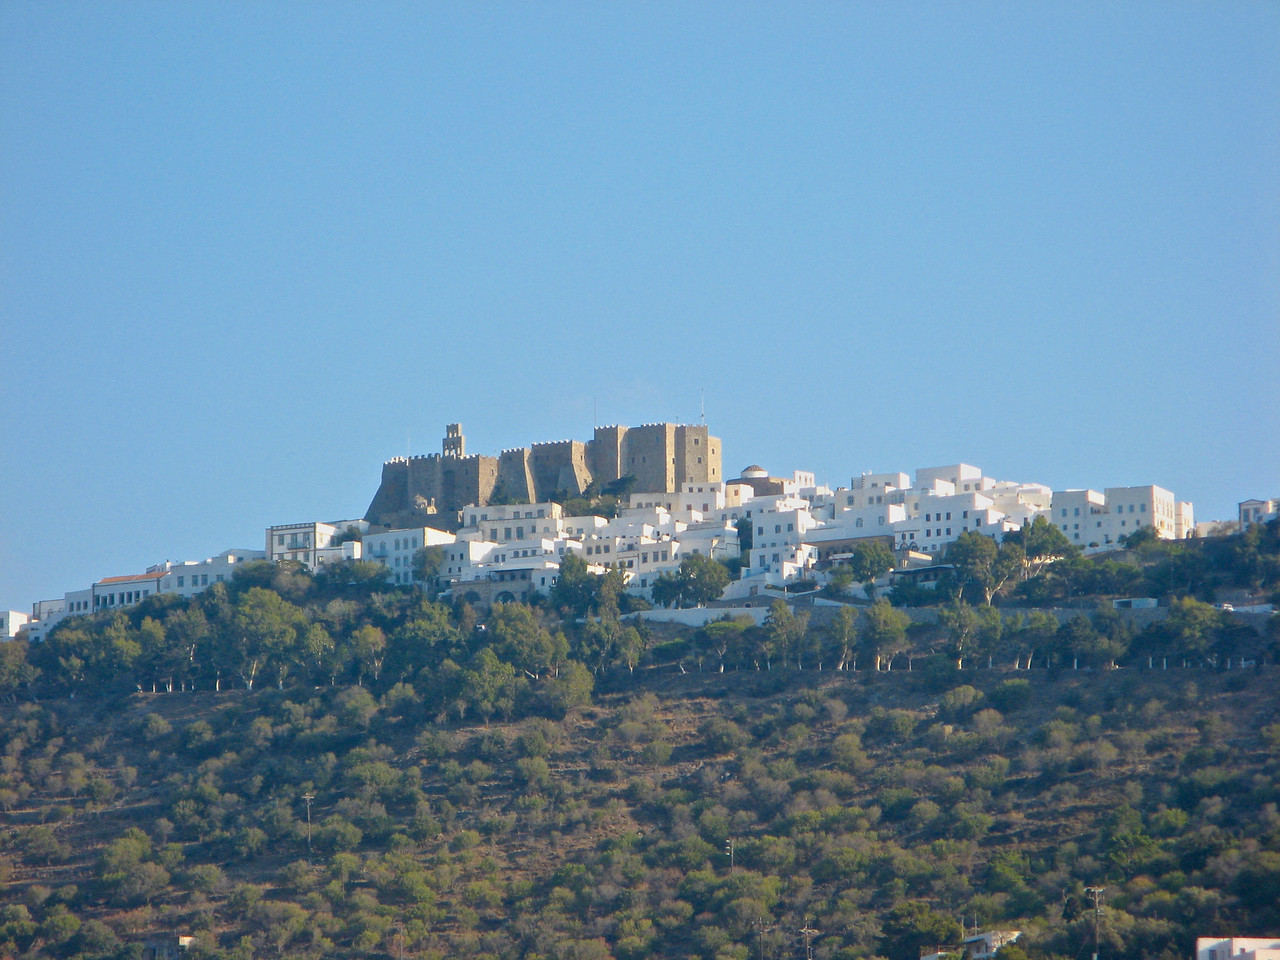 The small island of Pátmos in the Dodecanese is reputed to be where St John the Theologian wrote both his Gospel and the Apocalypse.